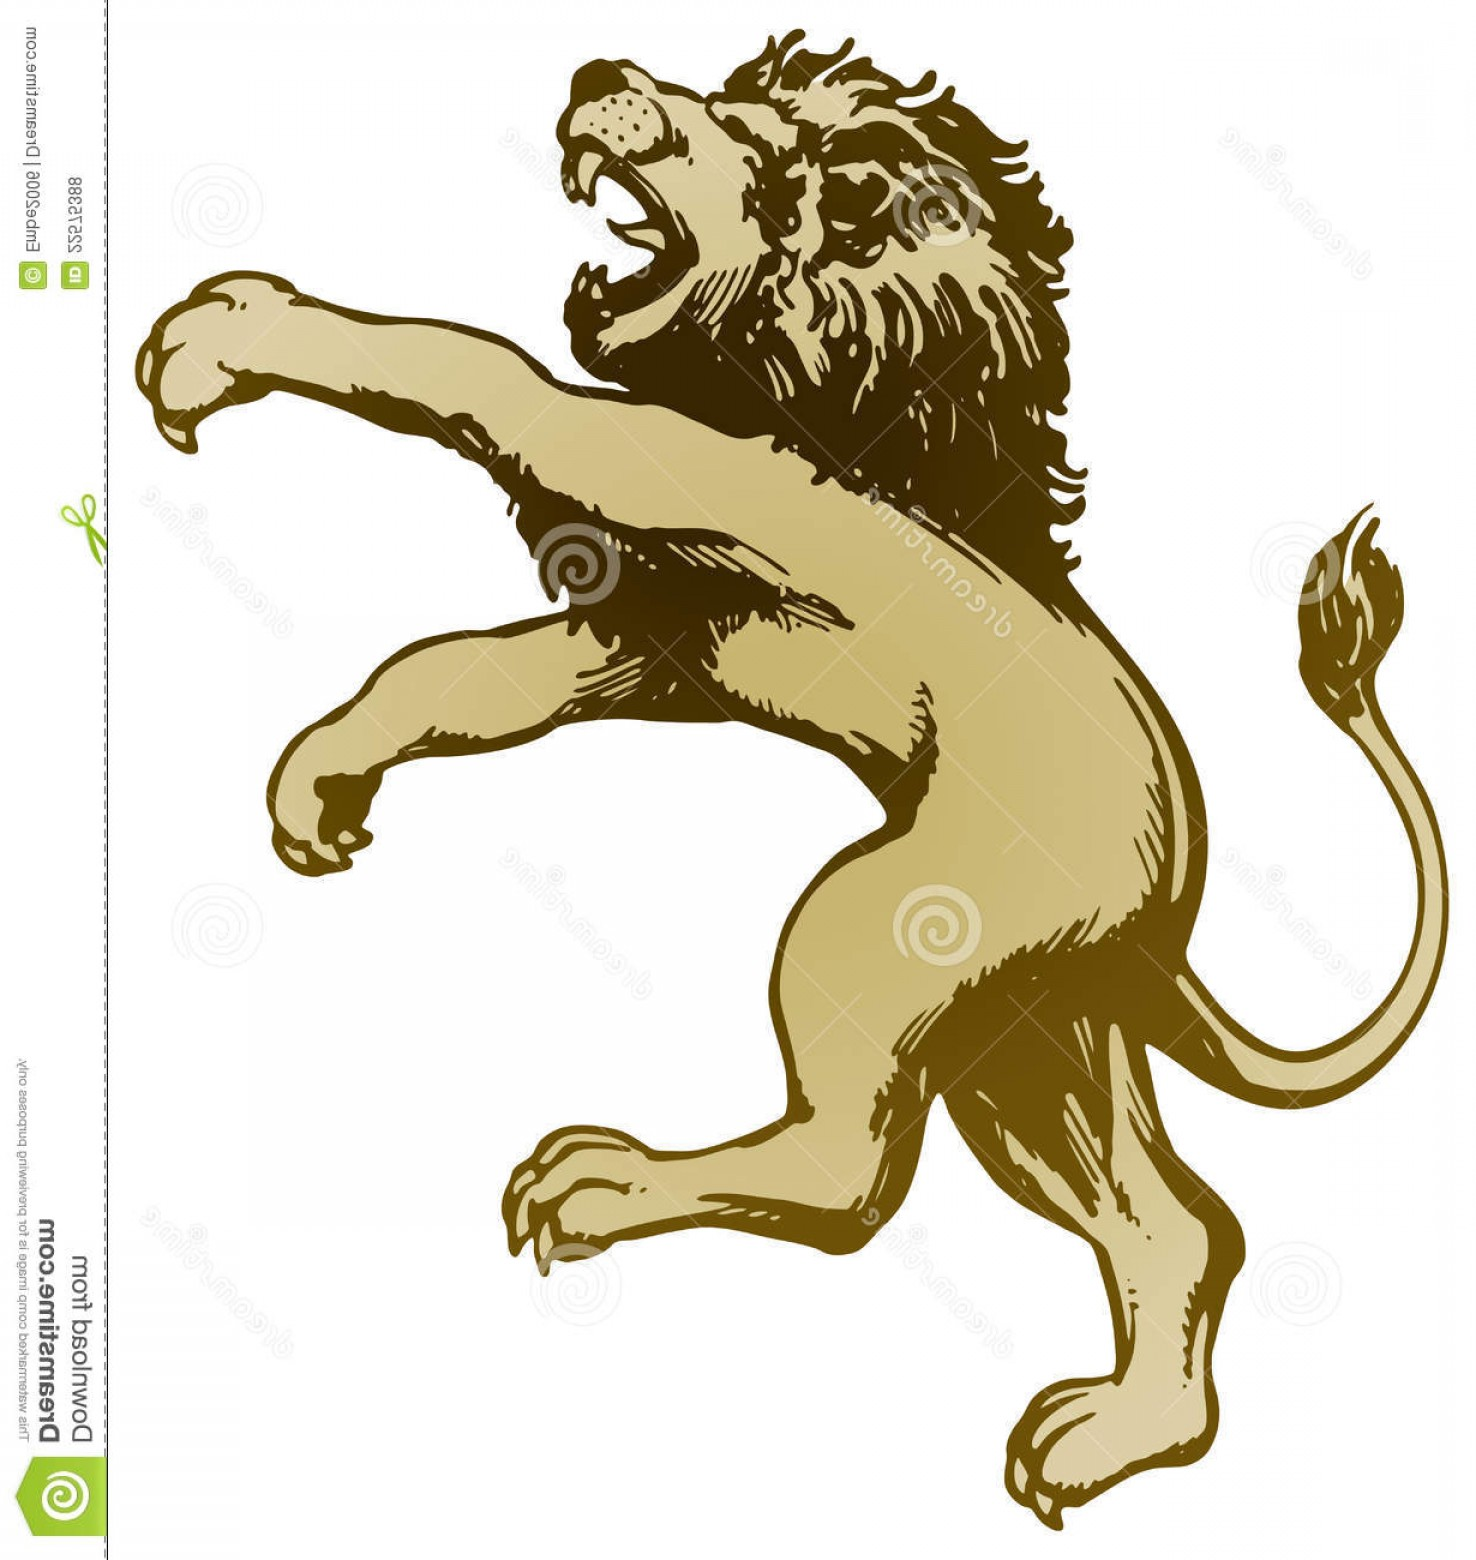 Standing Lions Crest Vector: Royalty Free Stock Photos Lion Standing Image